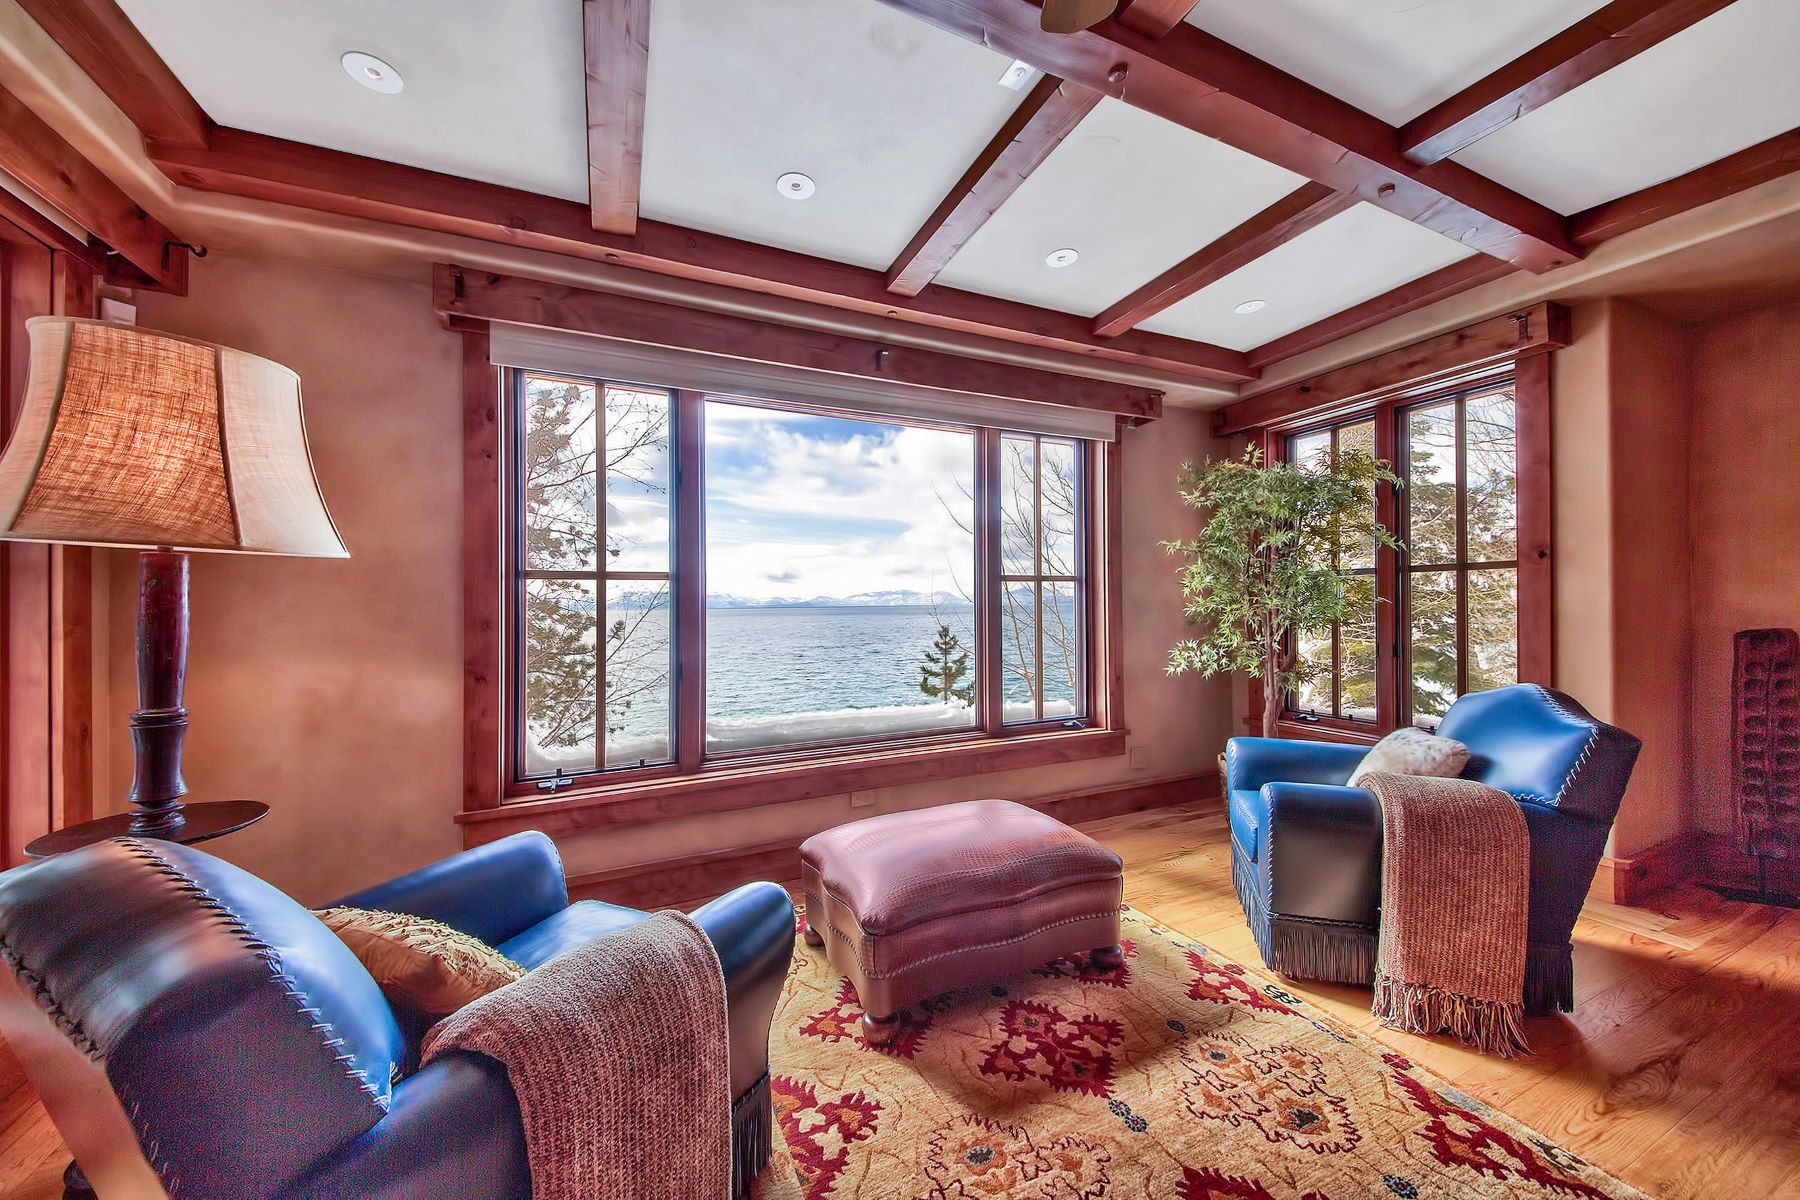 Additional photo for property listing at Water's Edge 1169 Lakeshore Blvd. Incline Village, Nevada 89451 United States